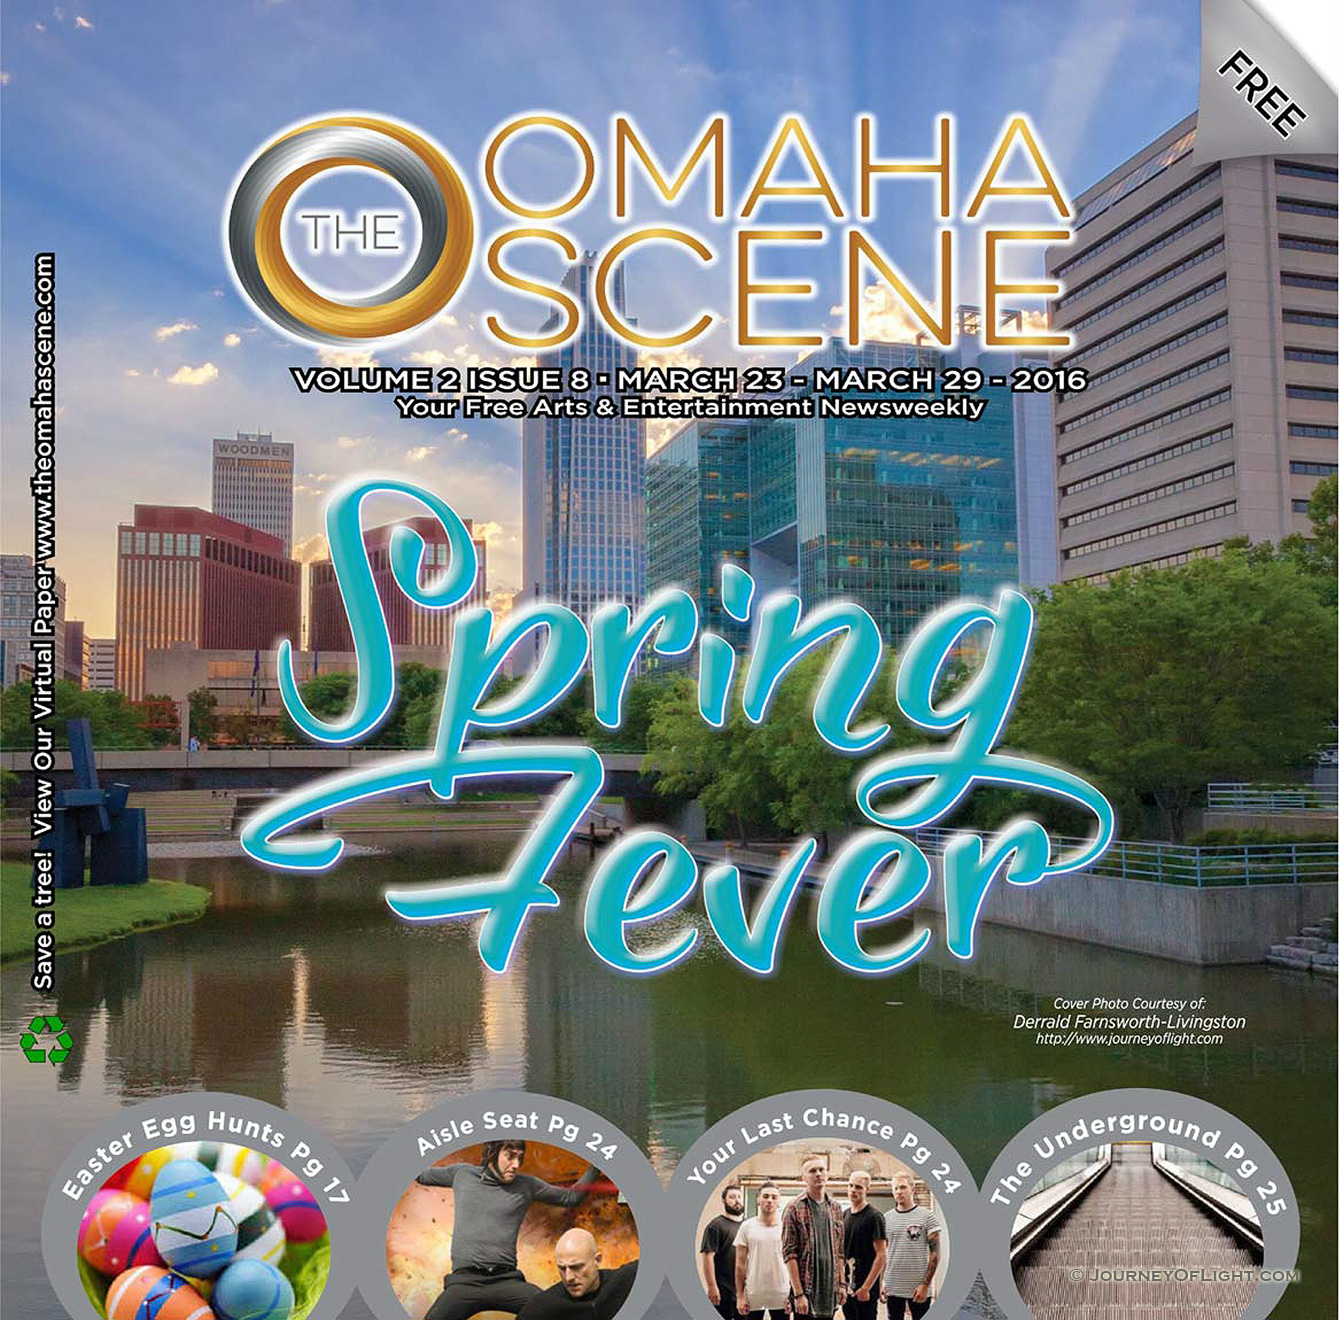 The Omaha Scene - Cover Photo. -  Picture